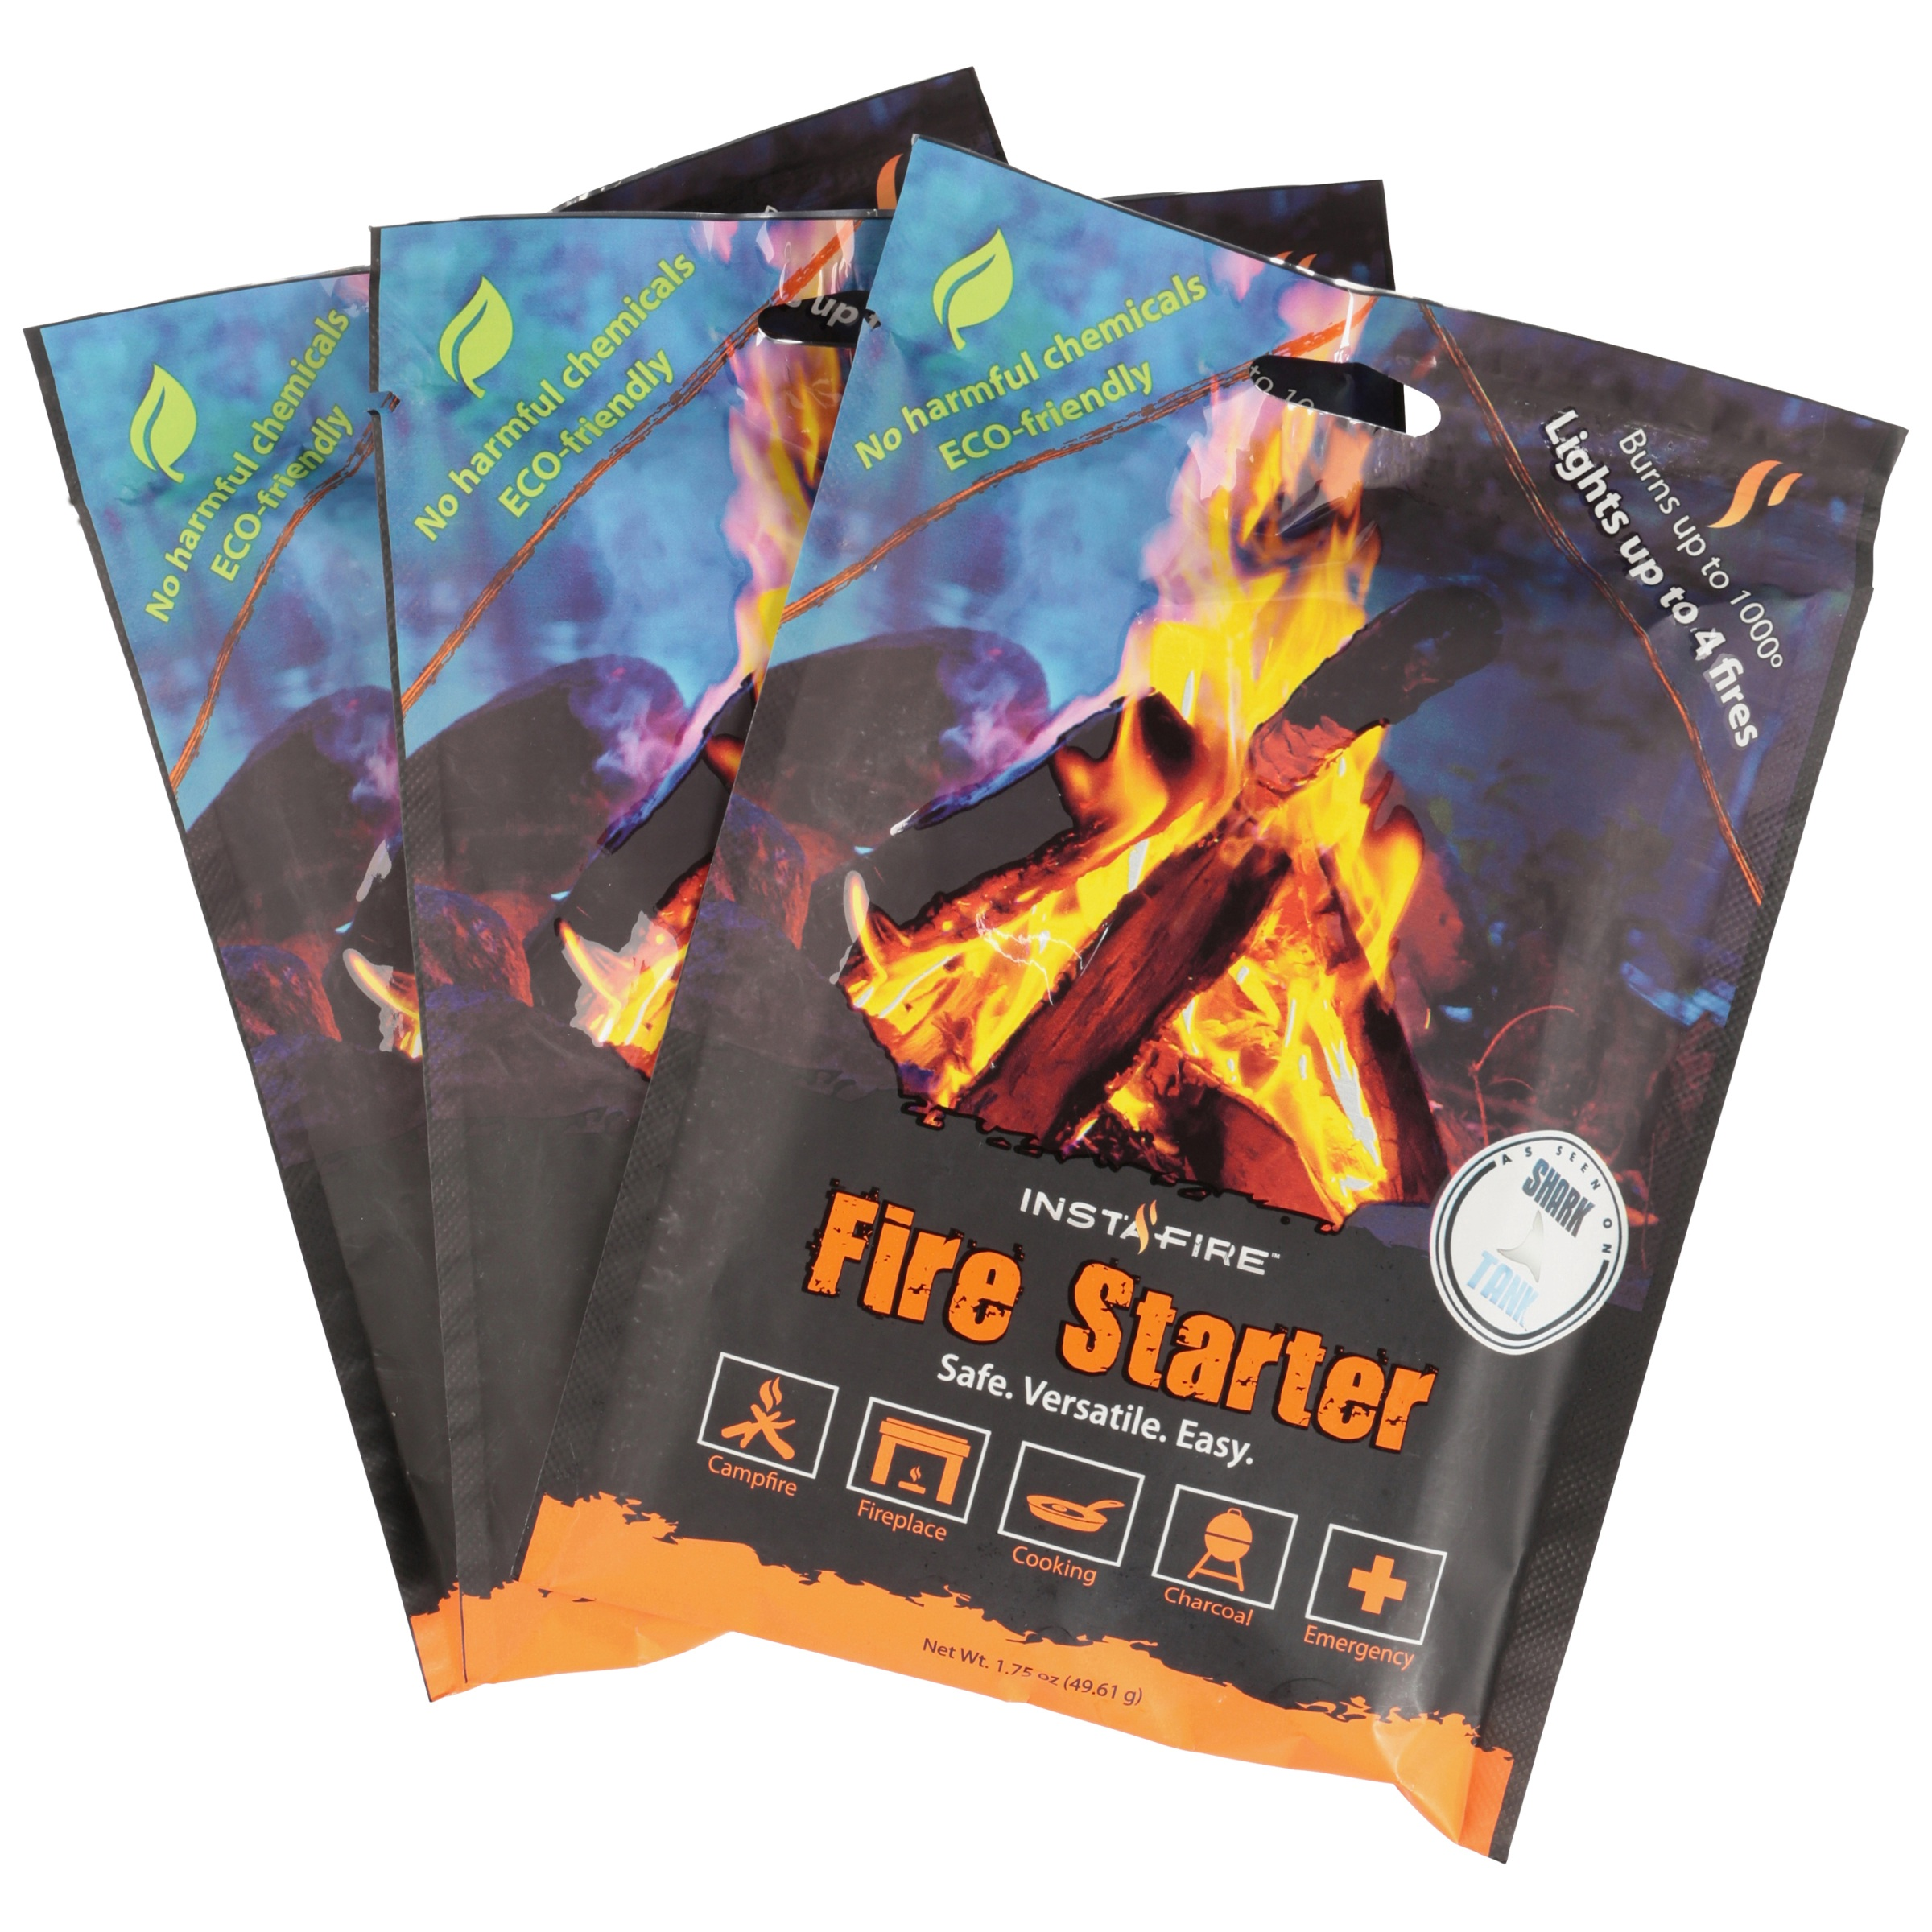 Instafire Fire Starter 1.75 oz Bag by Instafire